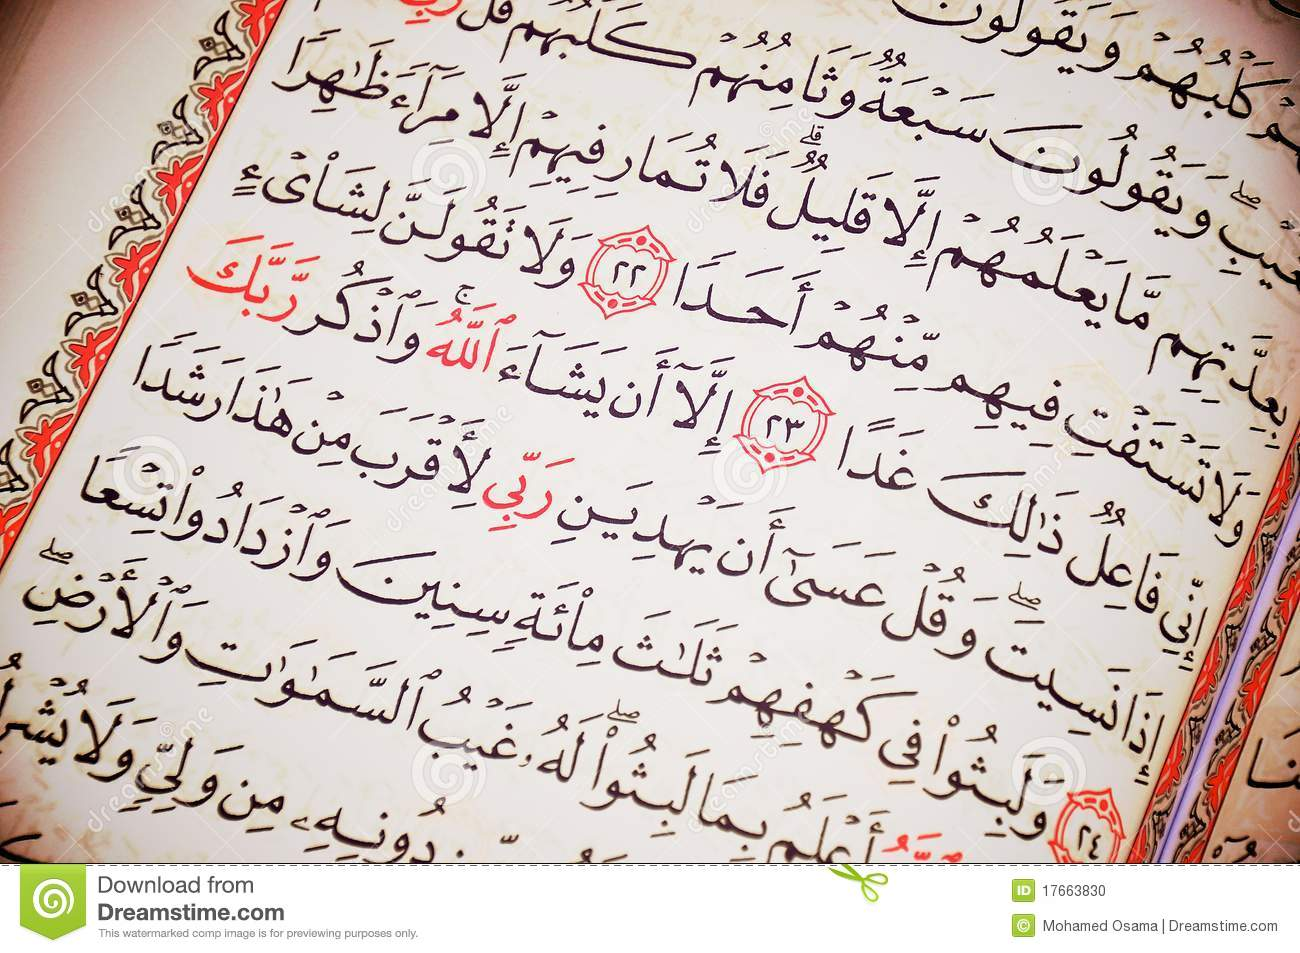 Holy Quran Cave Surah Quotes Stock Photo - Image: 17663830